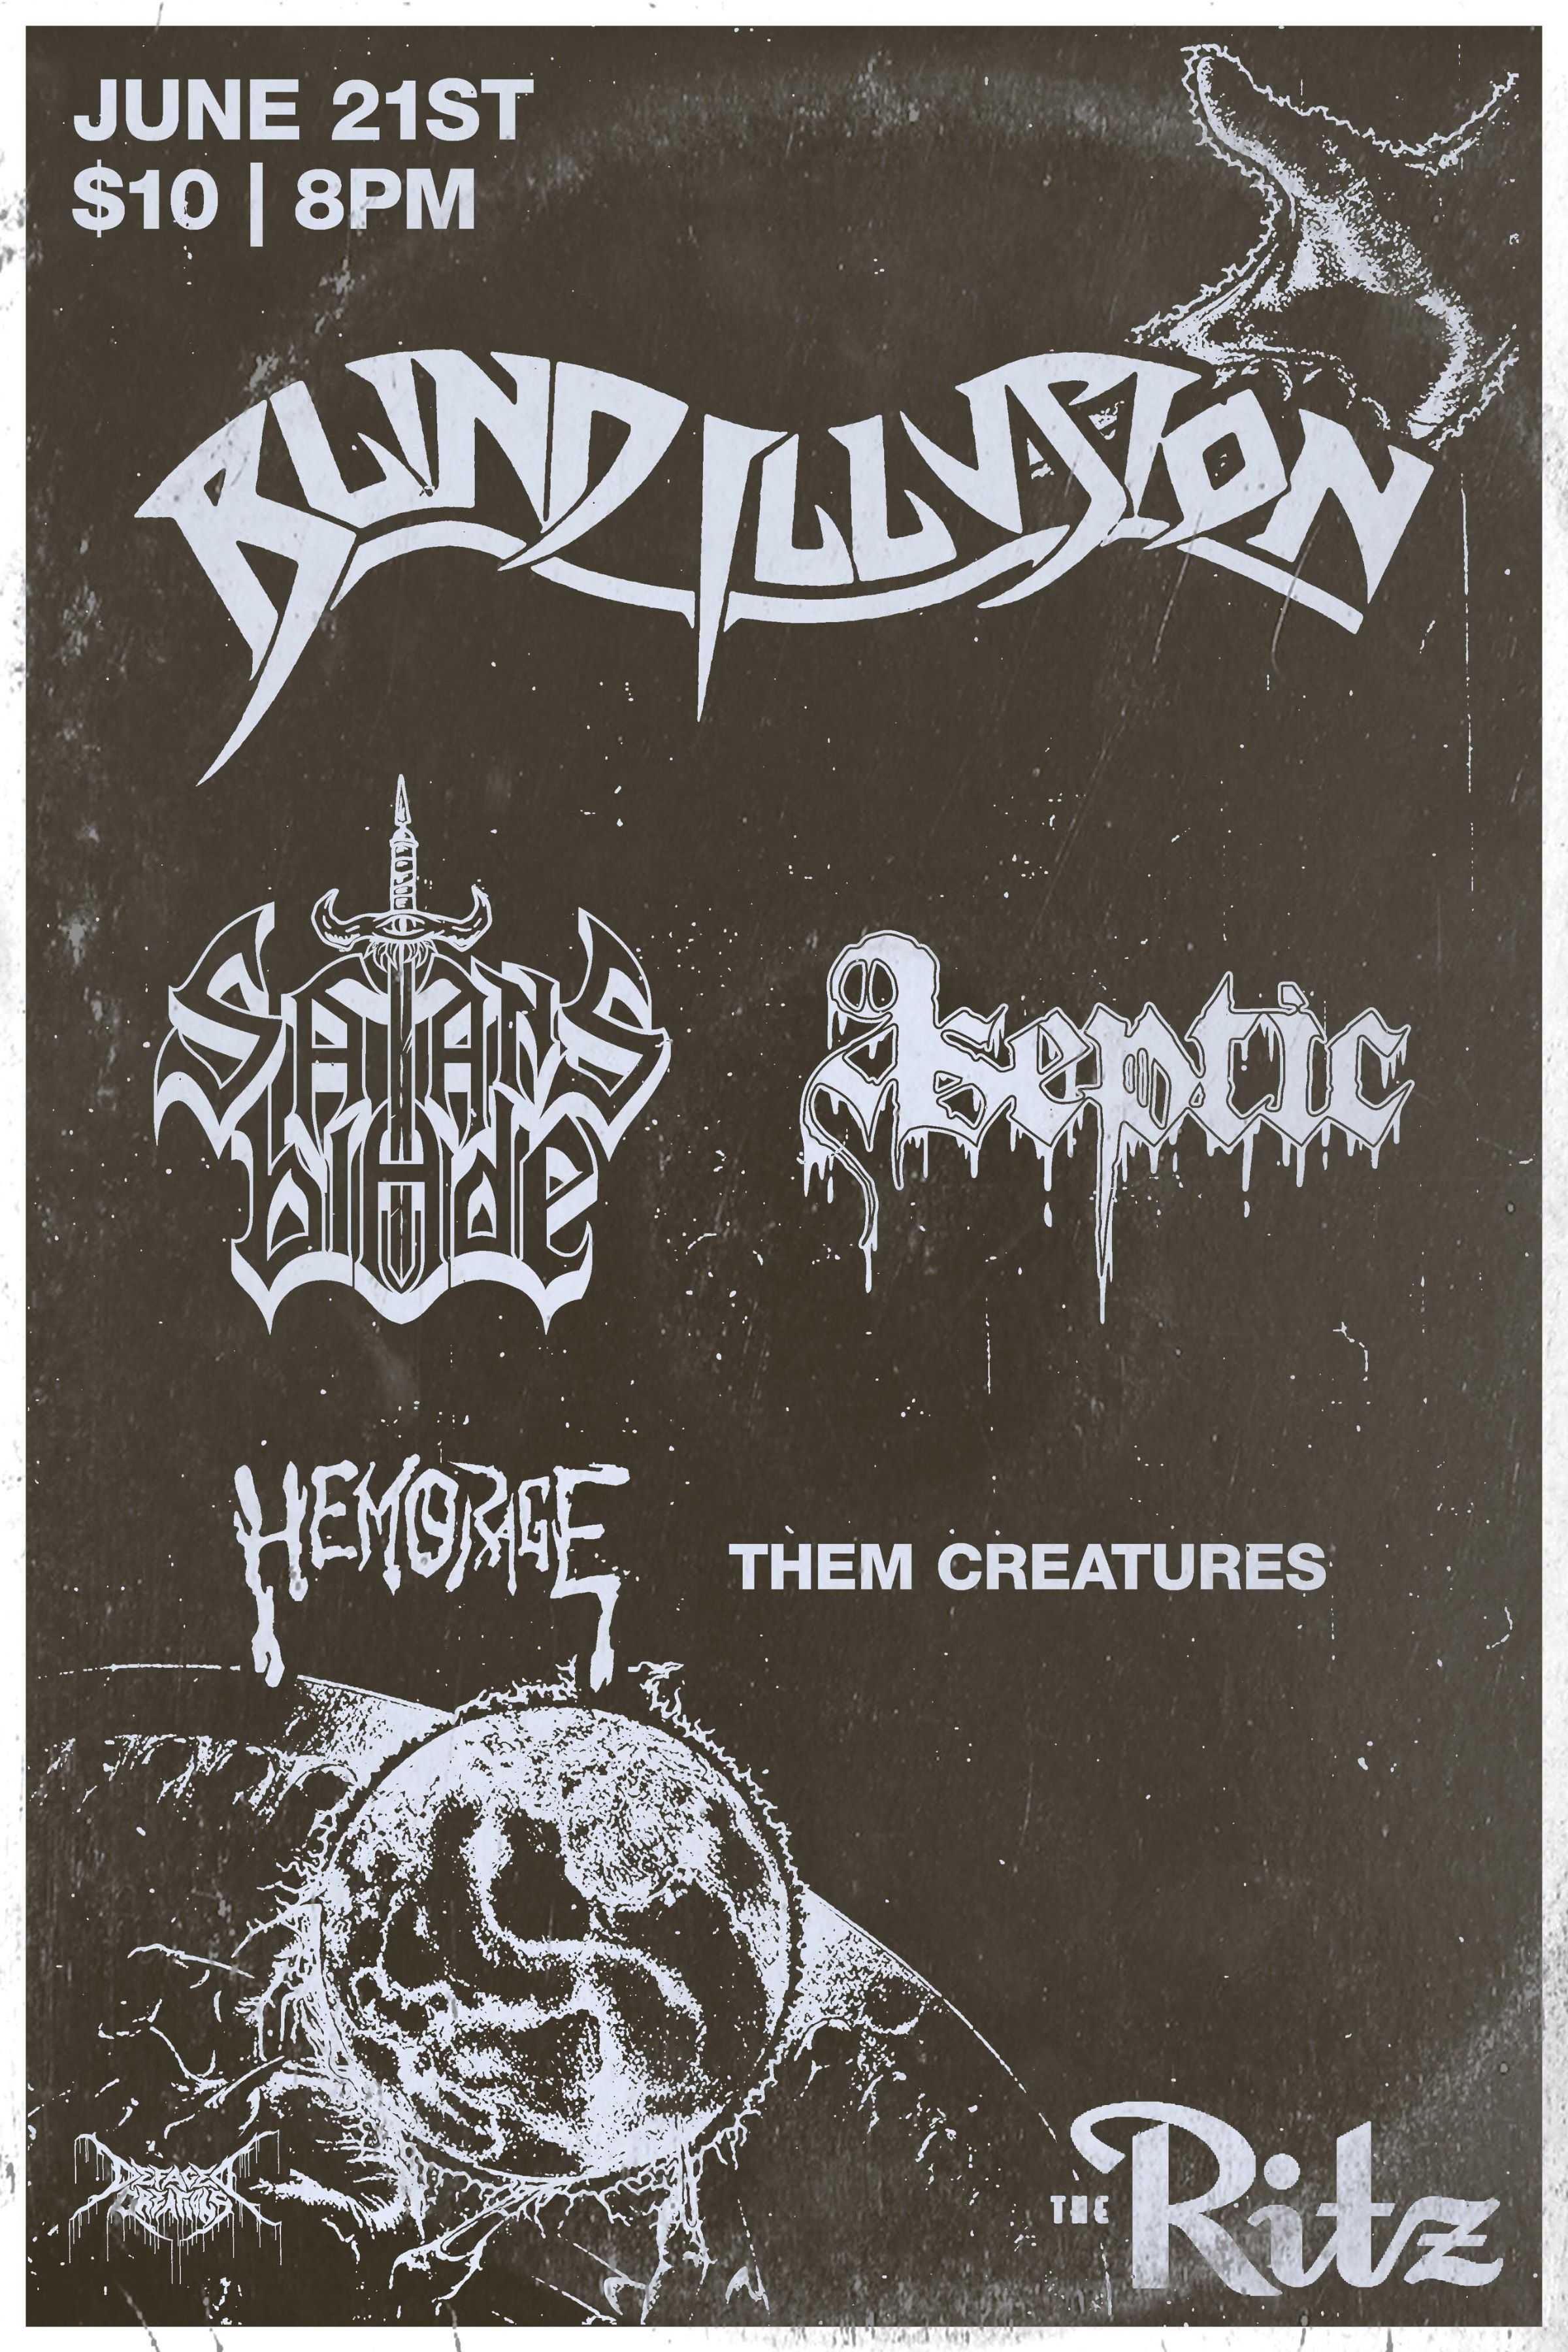 Black and white concert poster with band logos